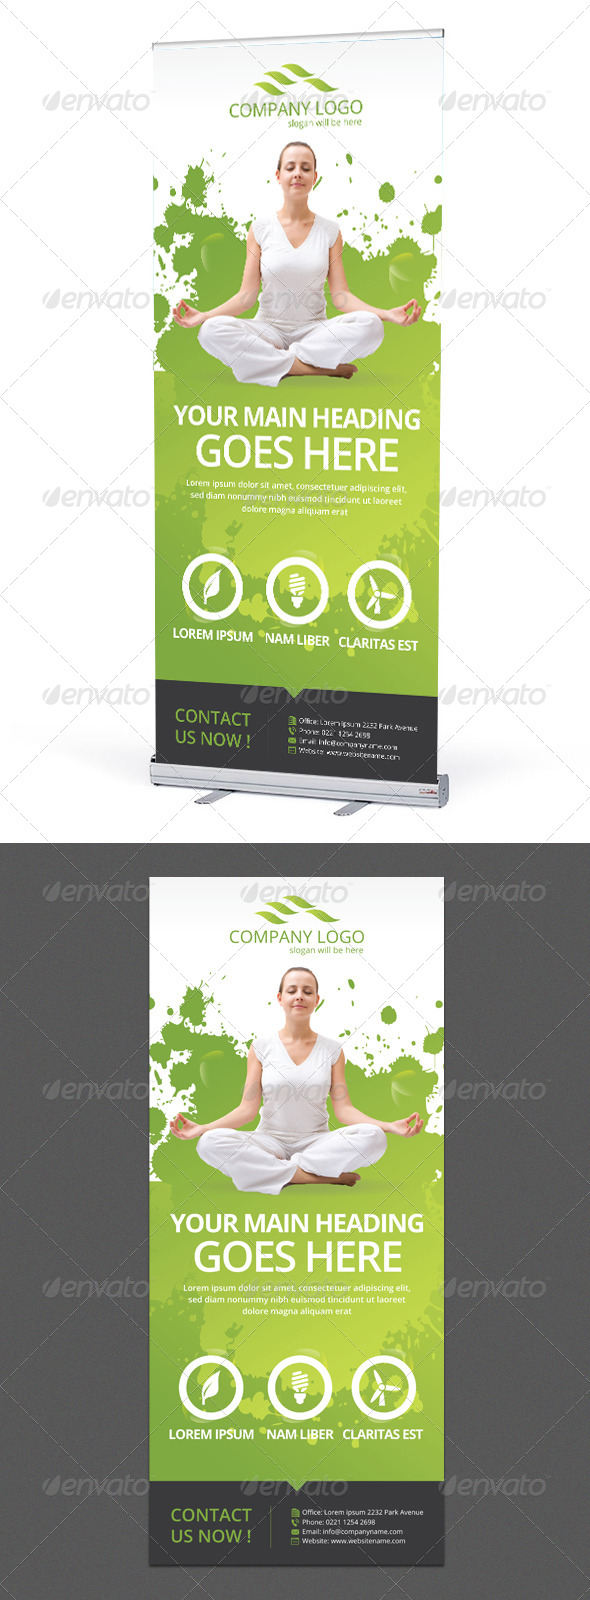 GraphicRiver Corporate Banner or Rollup 7782234